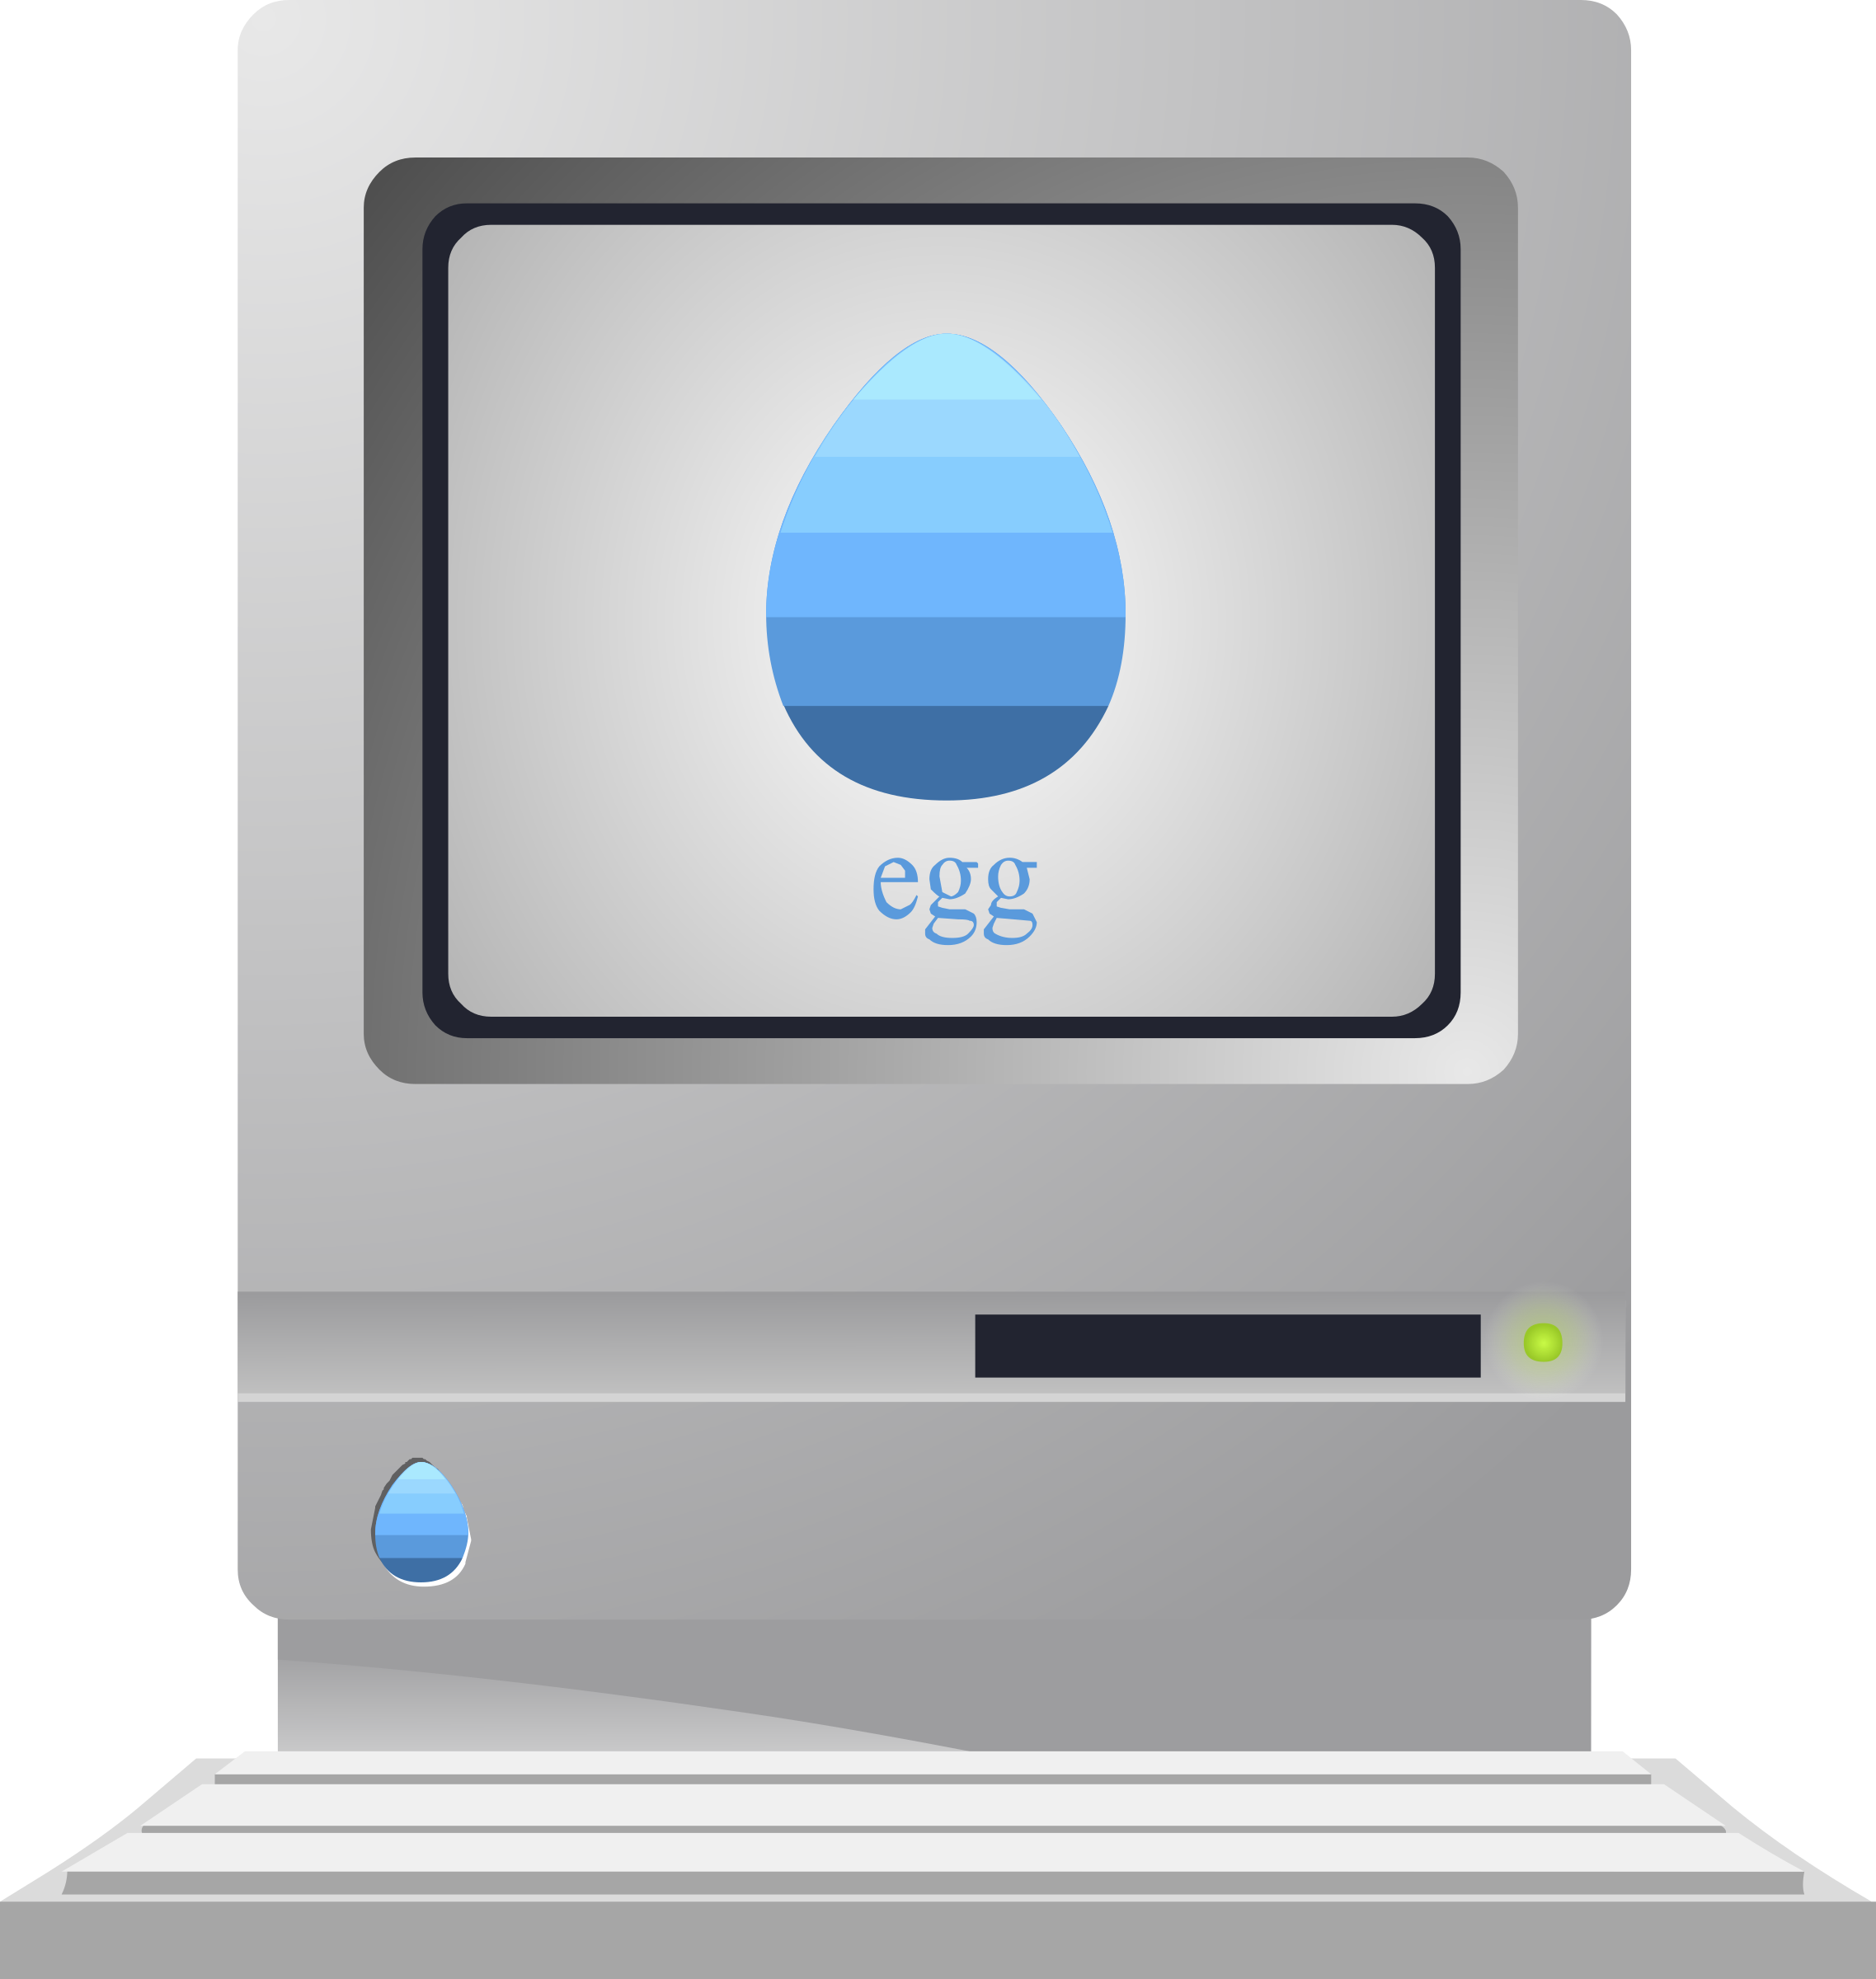 Anachronistic vintage 'egg' computer from Glitch by anarres